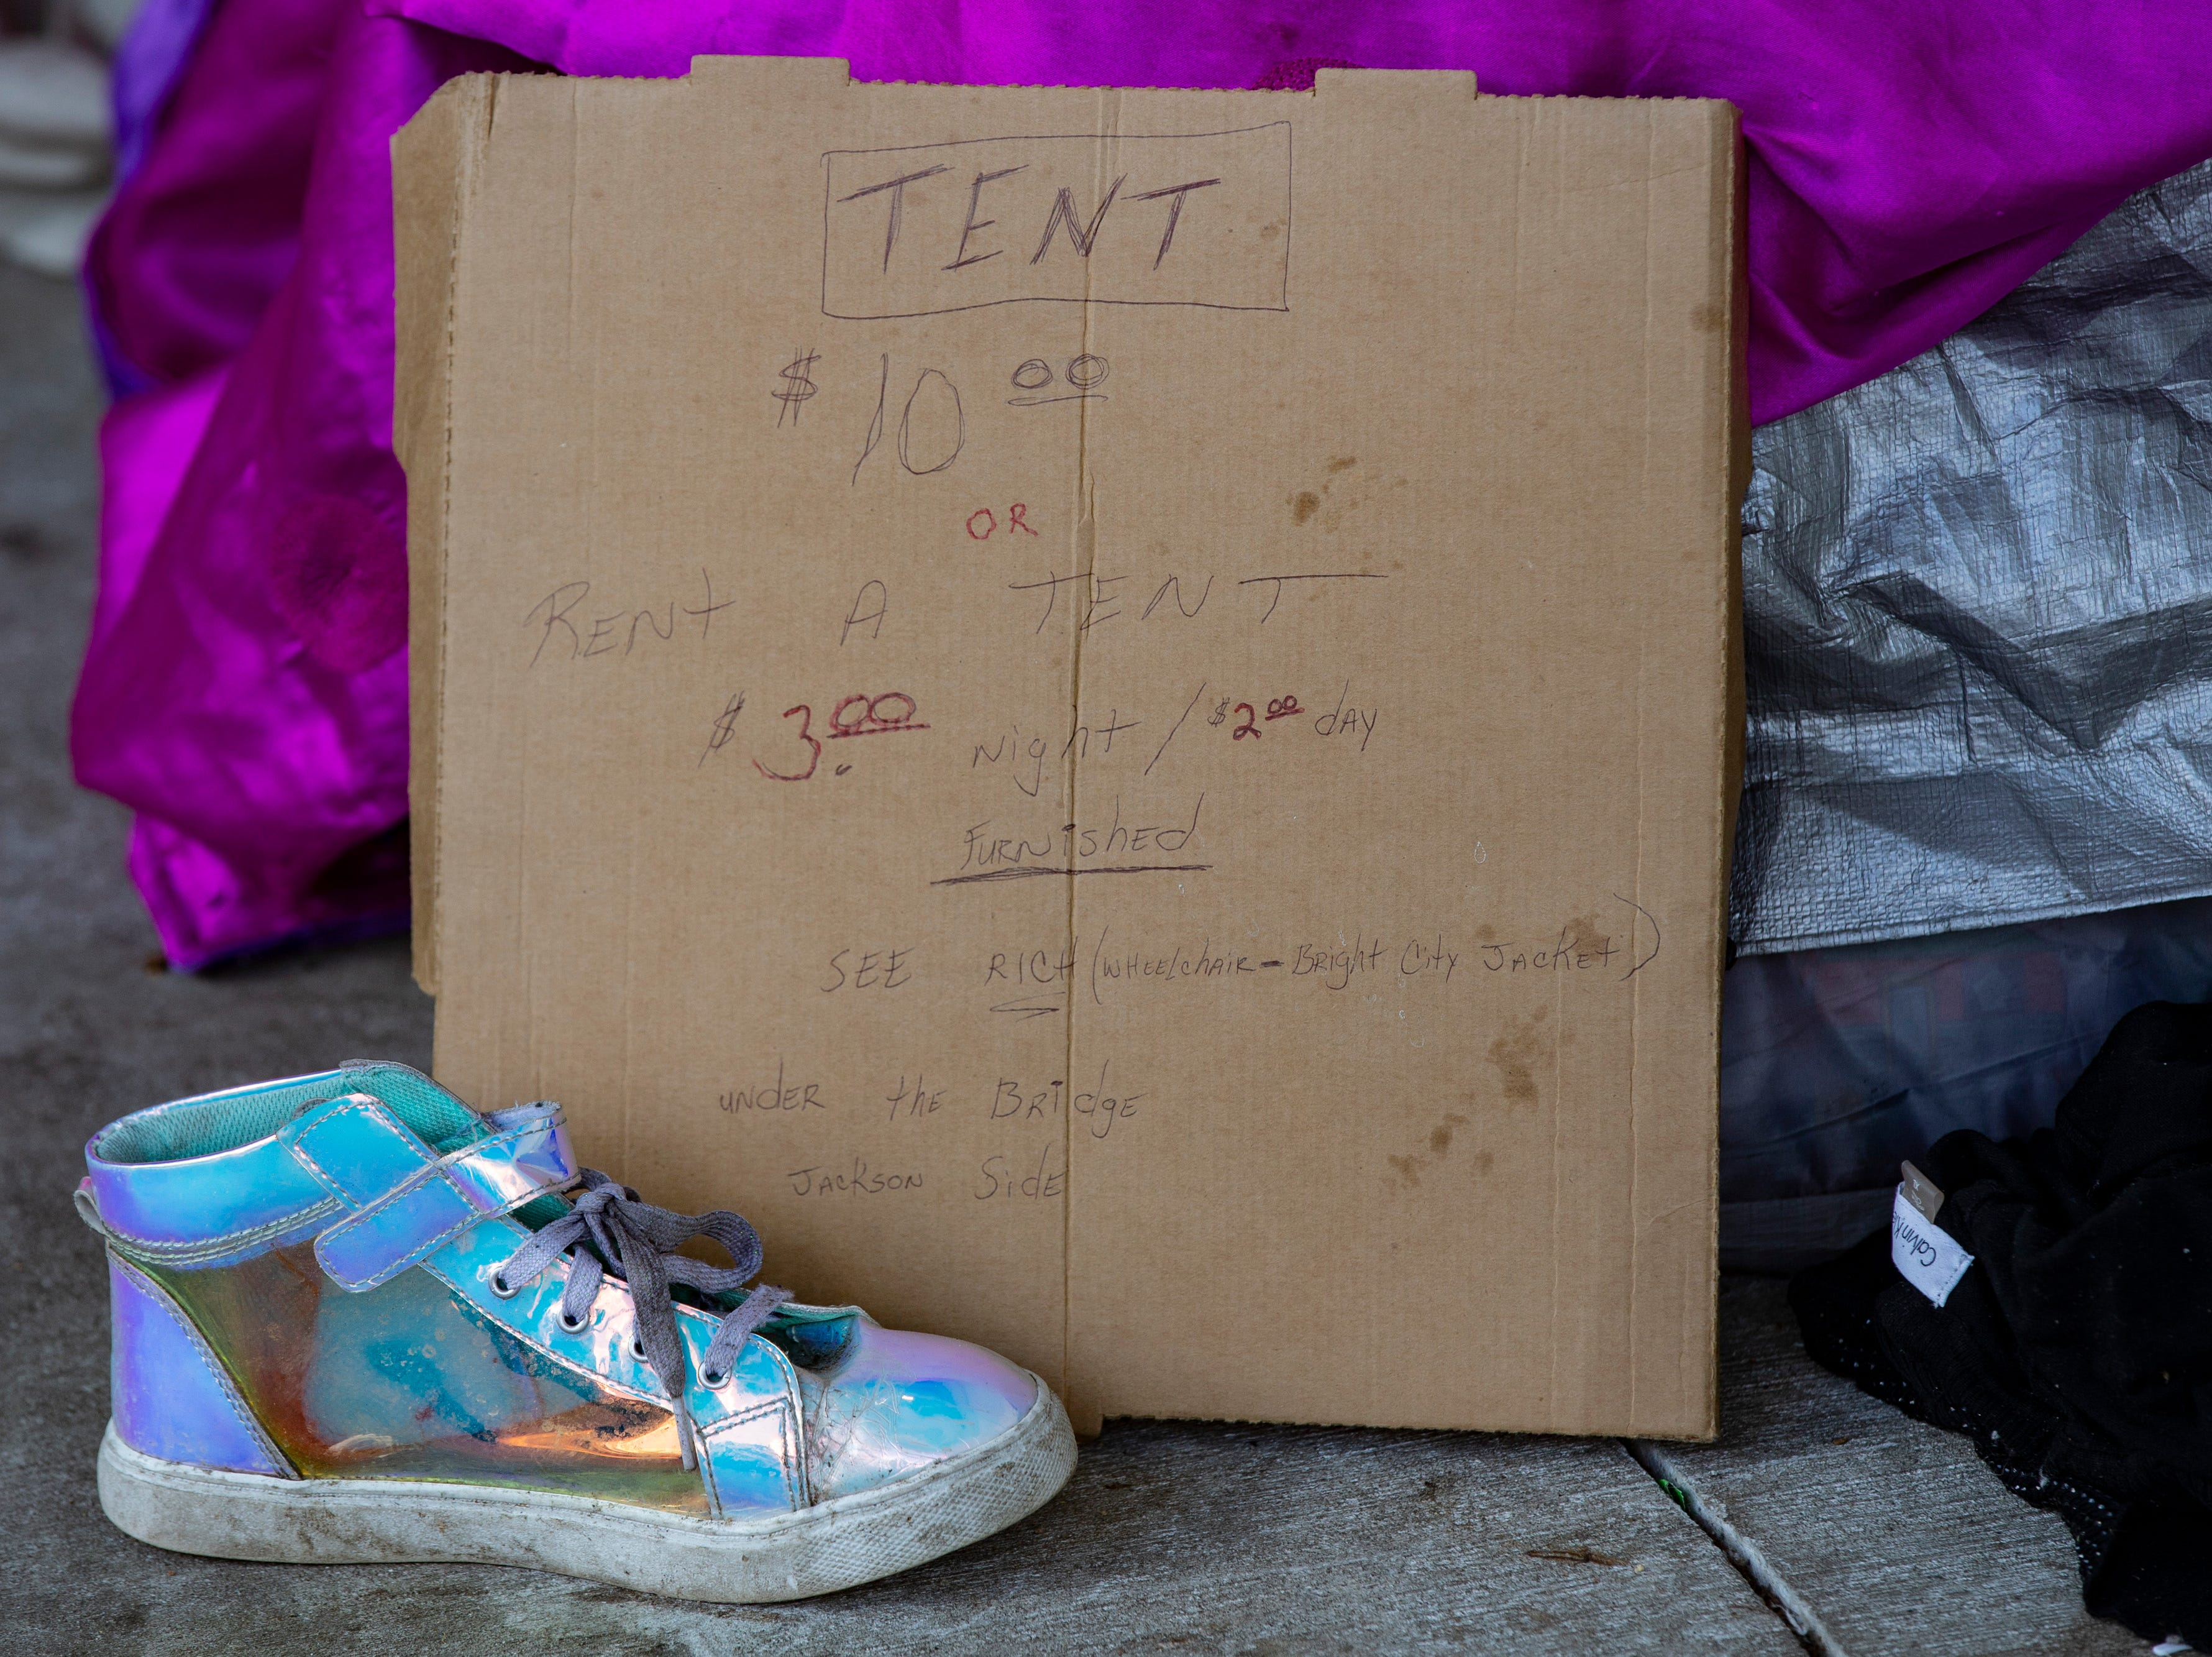 A sign for a tent purchase, or rental at the homeless camp area under the bypasses along East Jefferson Street and Jackson Street in downtown Louisville. March 18, 2019